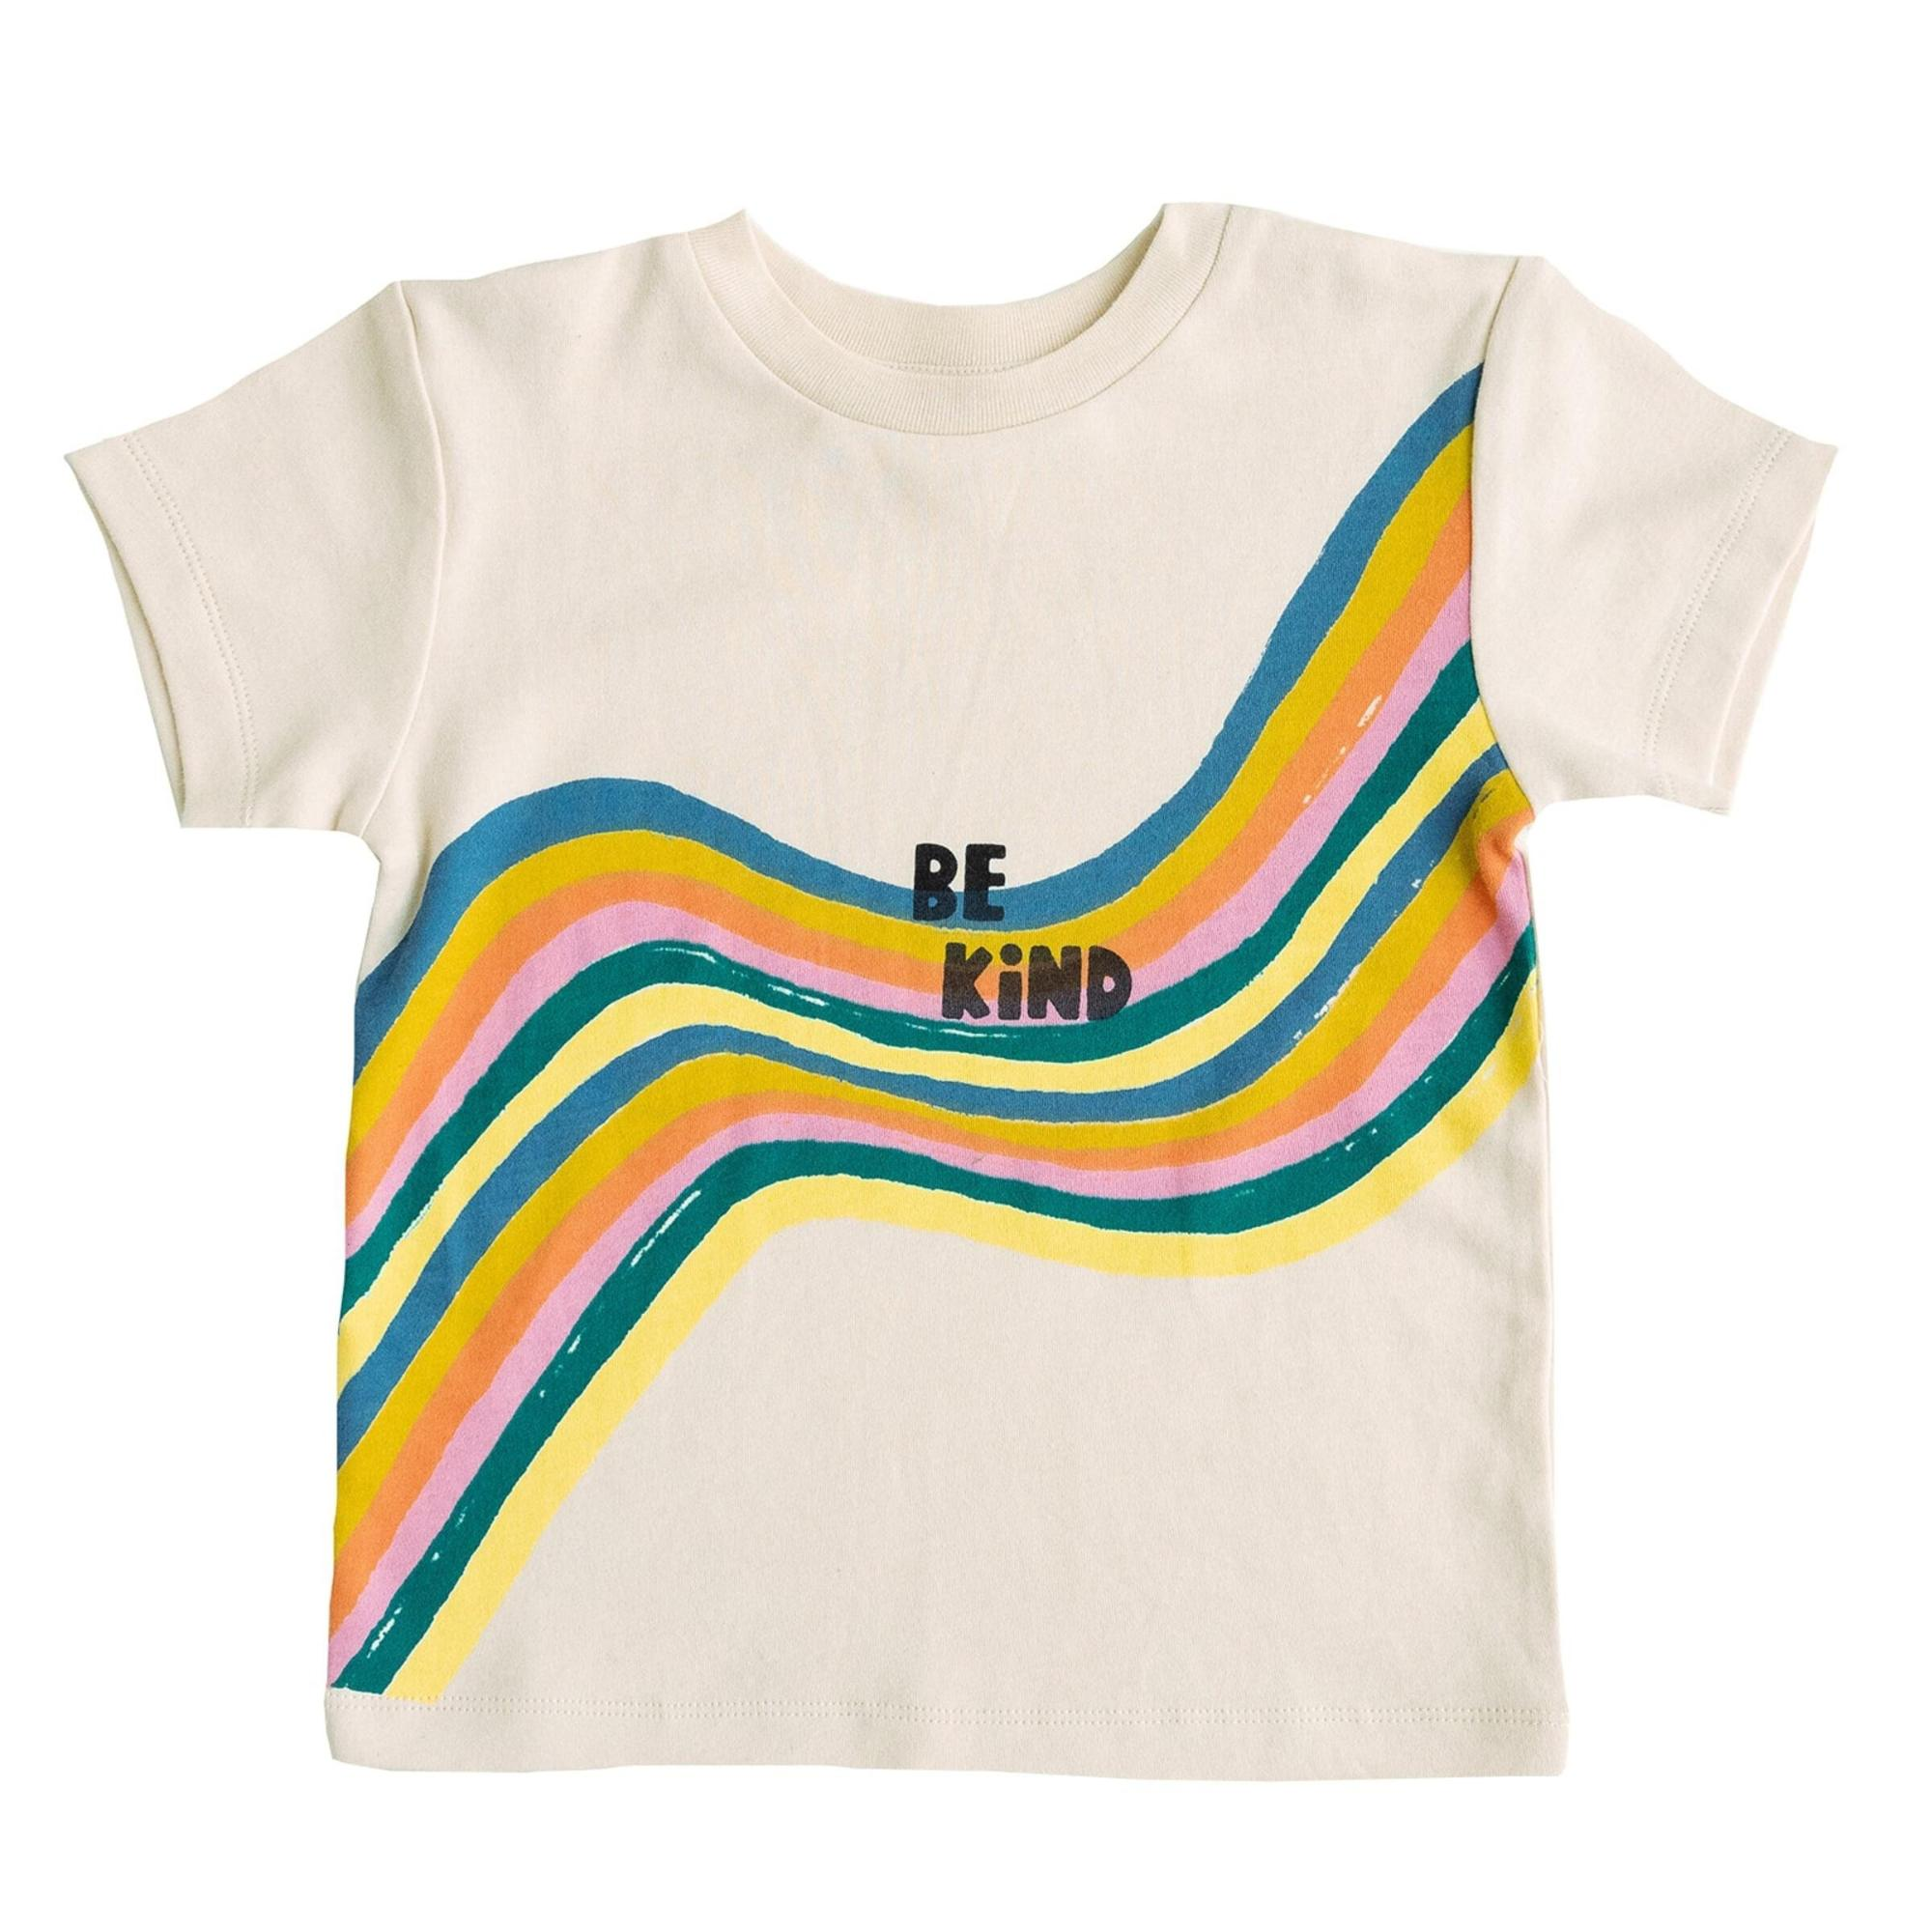 Bizz x Siss Graphic S/S Tee in Be Kind